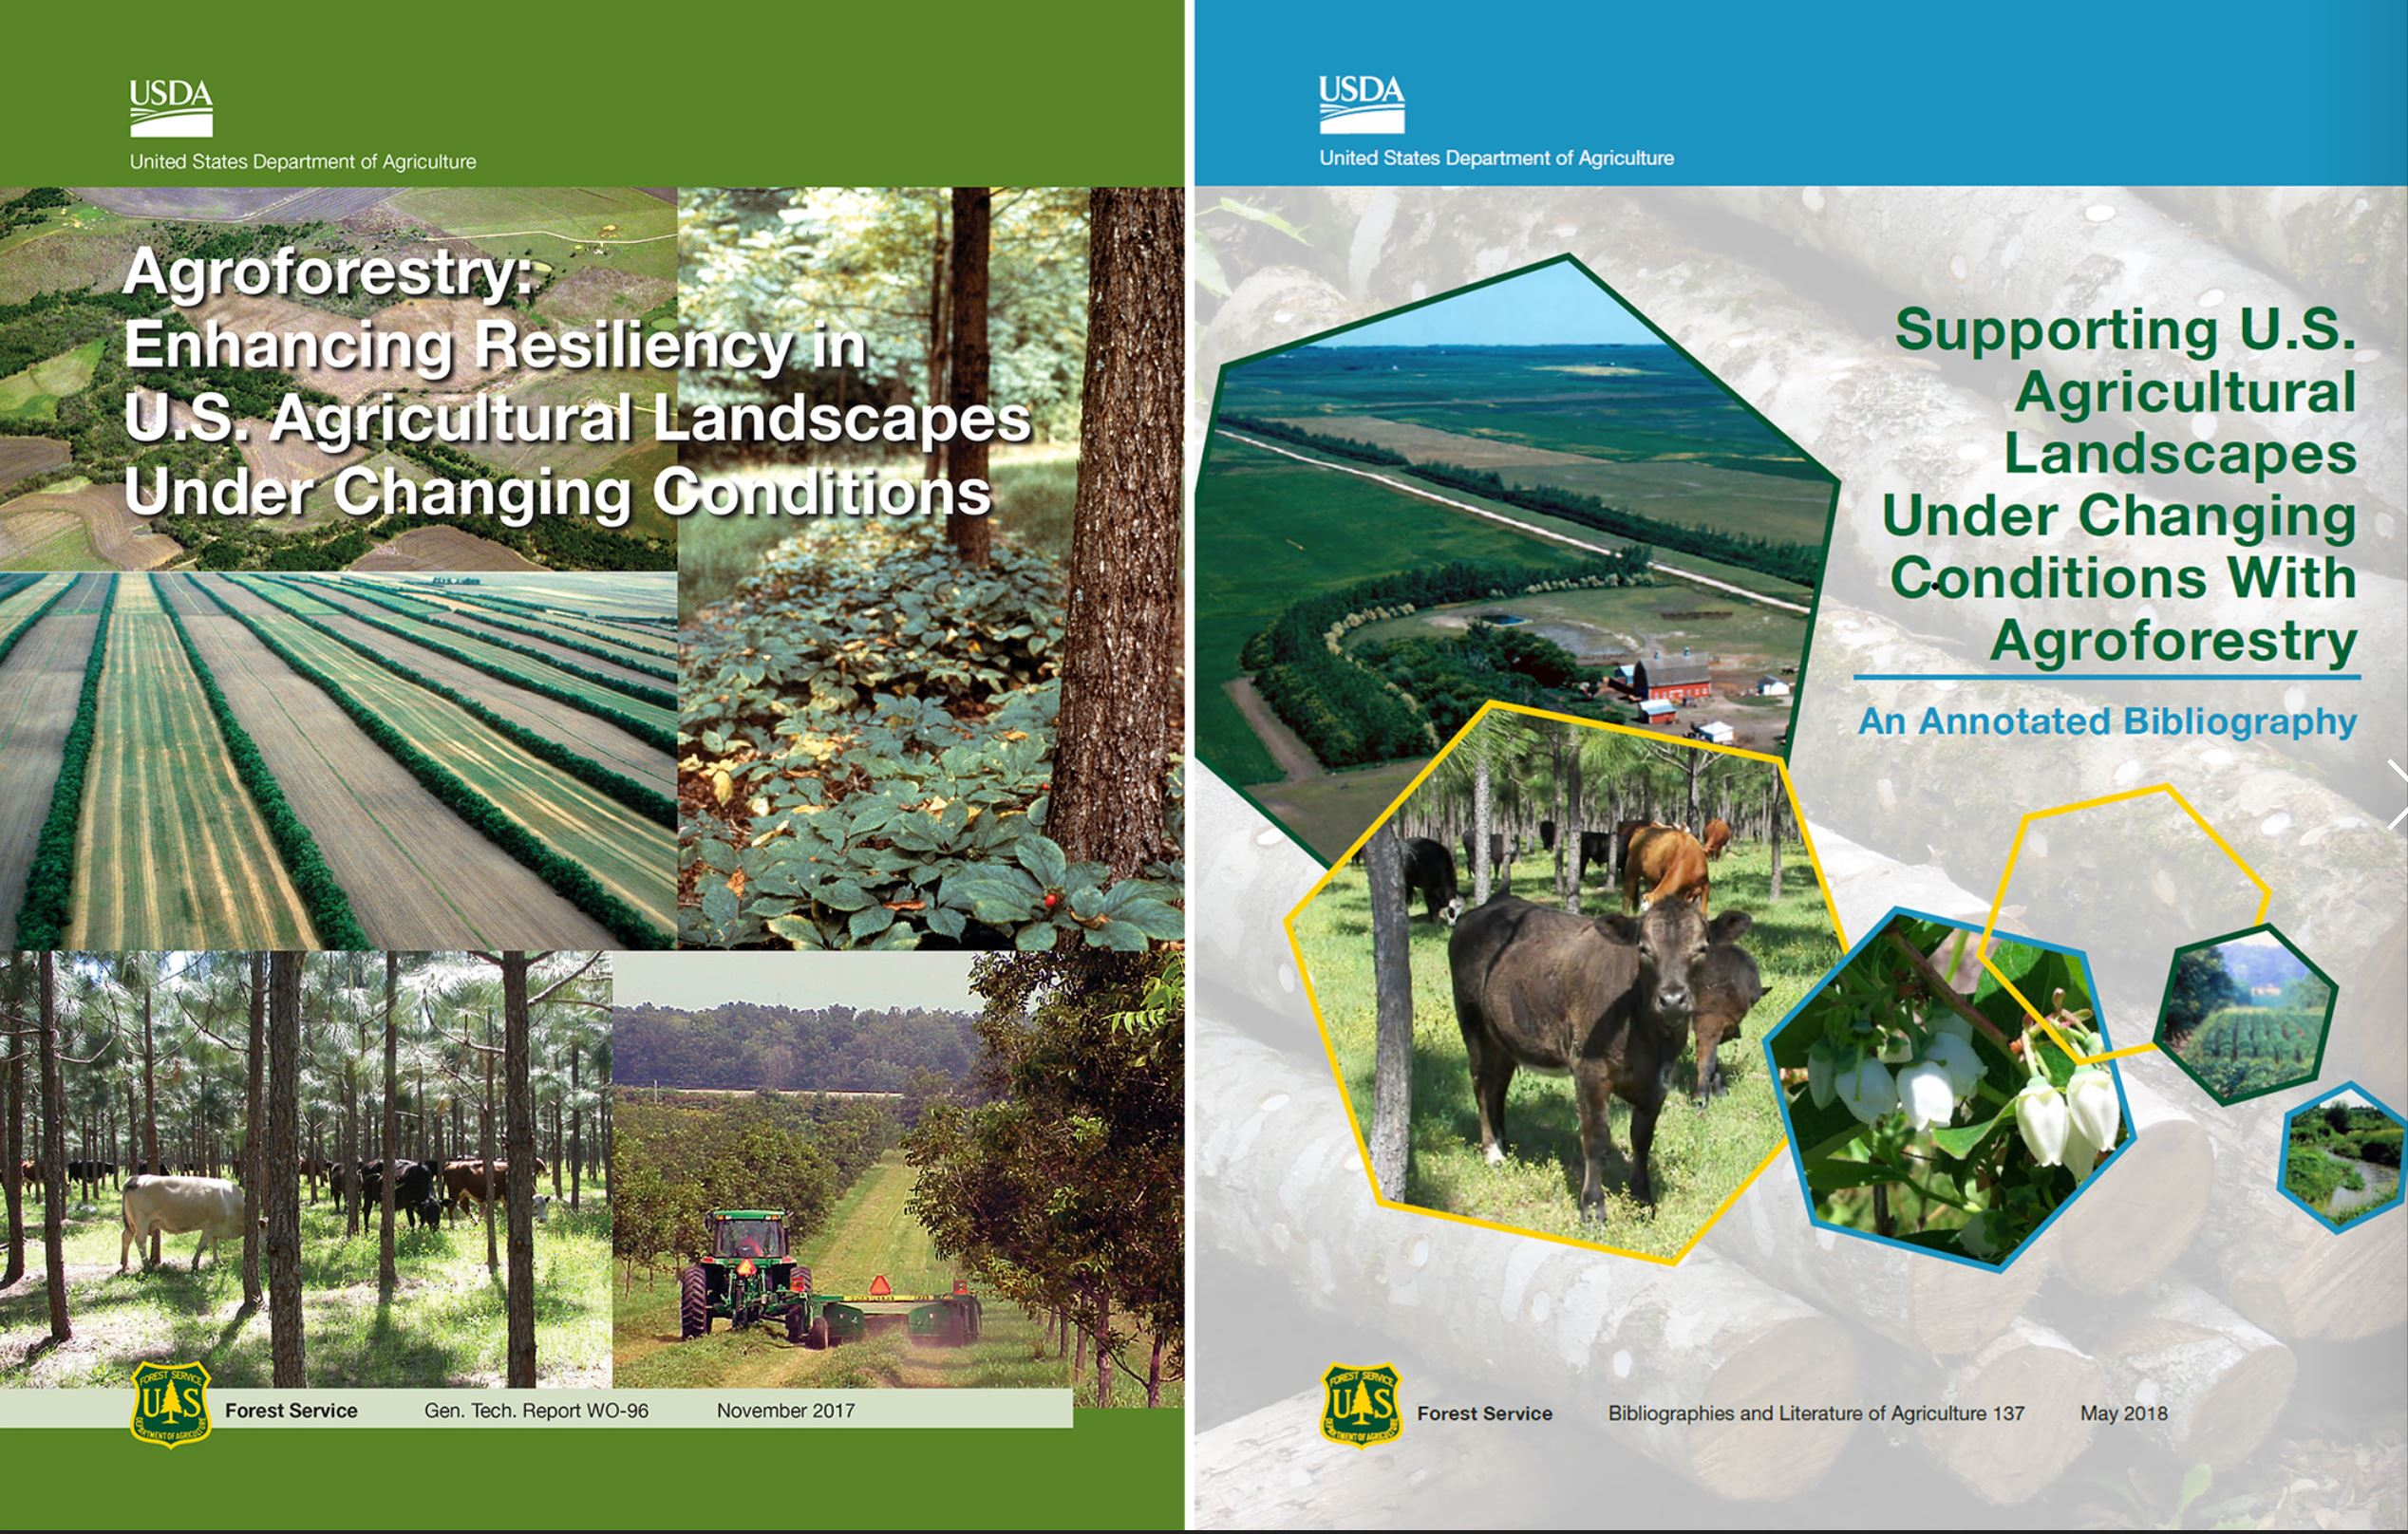 Figure 1. Title pages of the assessment report and annotated bibliography on agroforestry's role in mitigating and adapting to climate change.